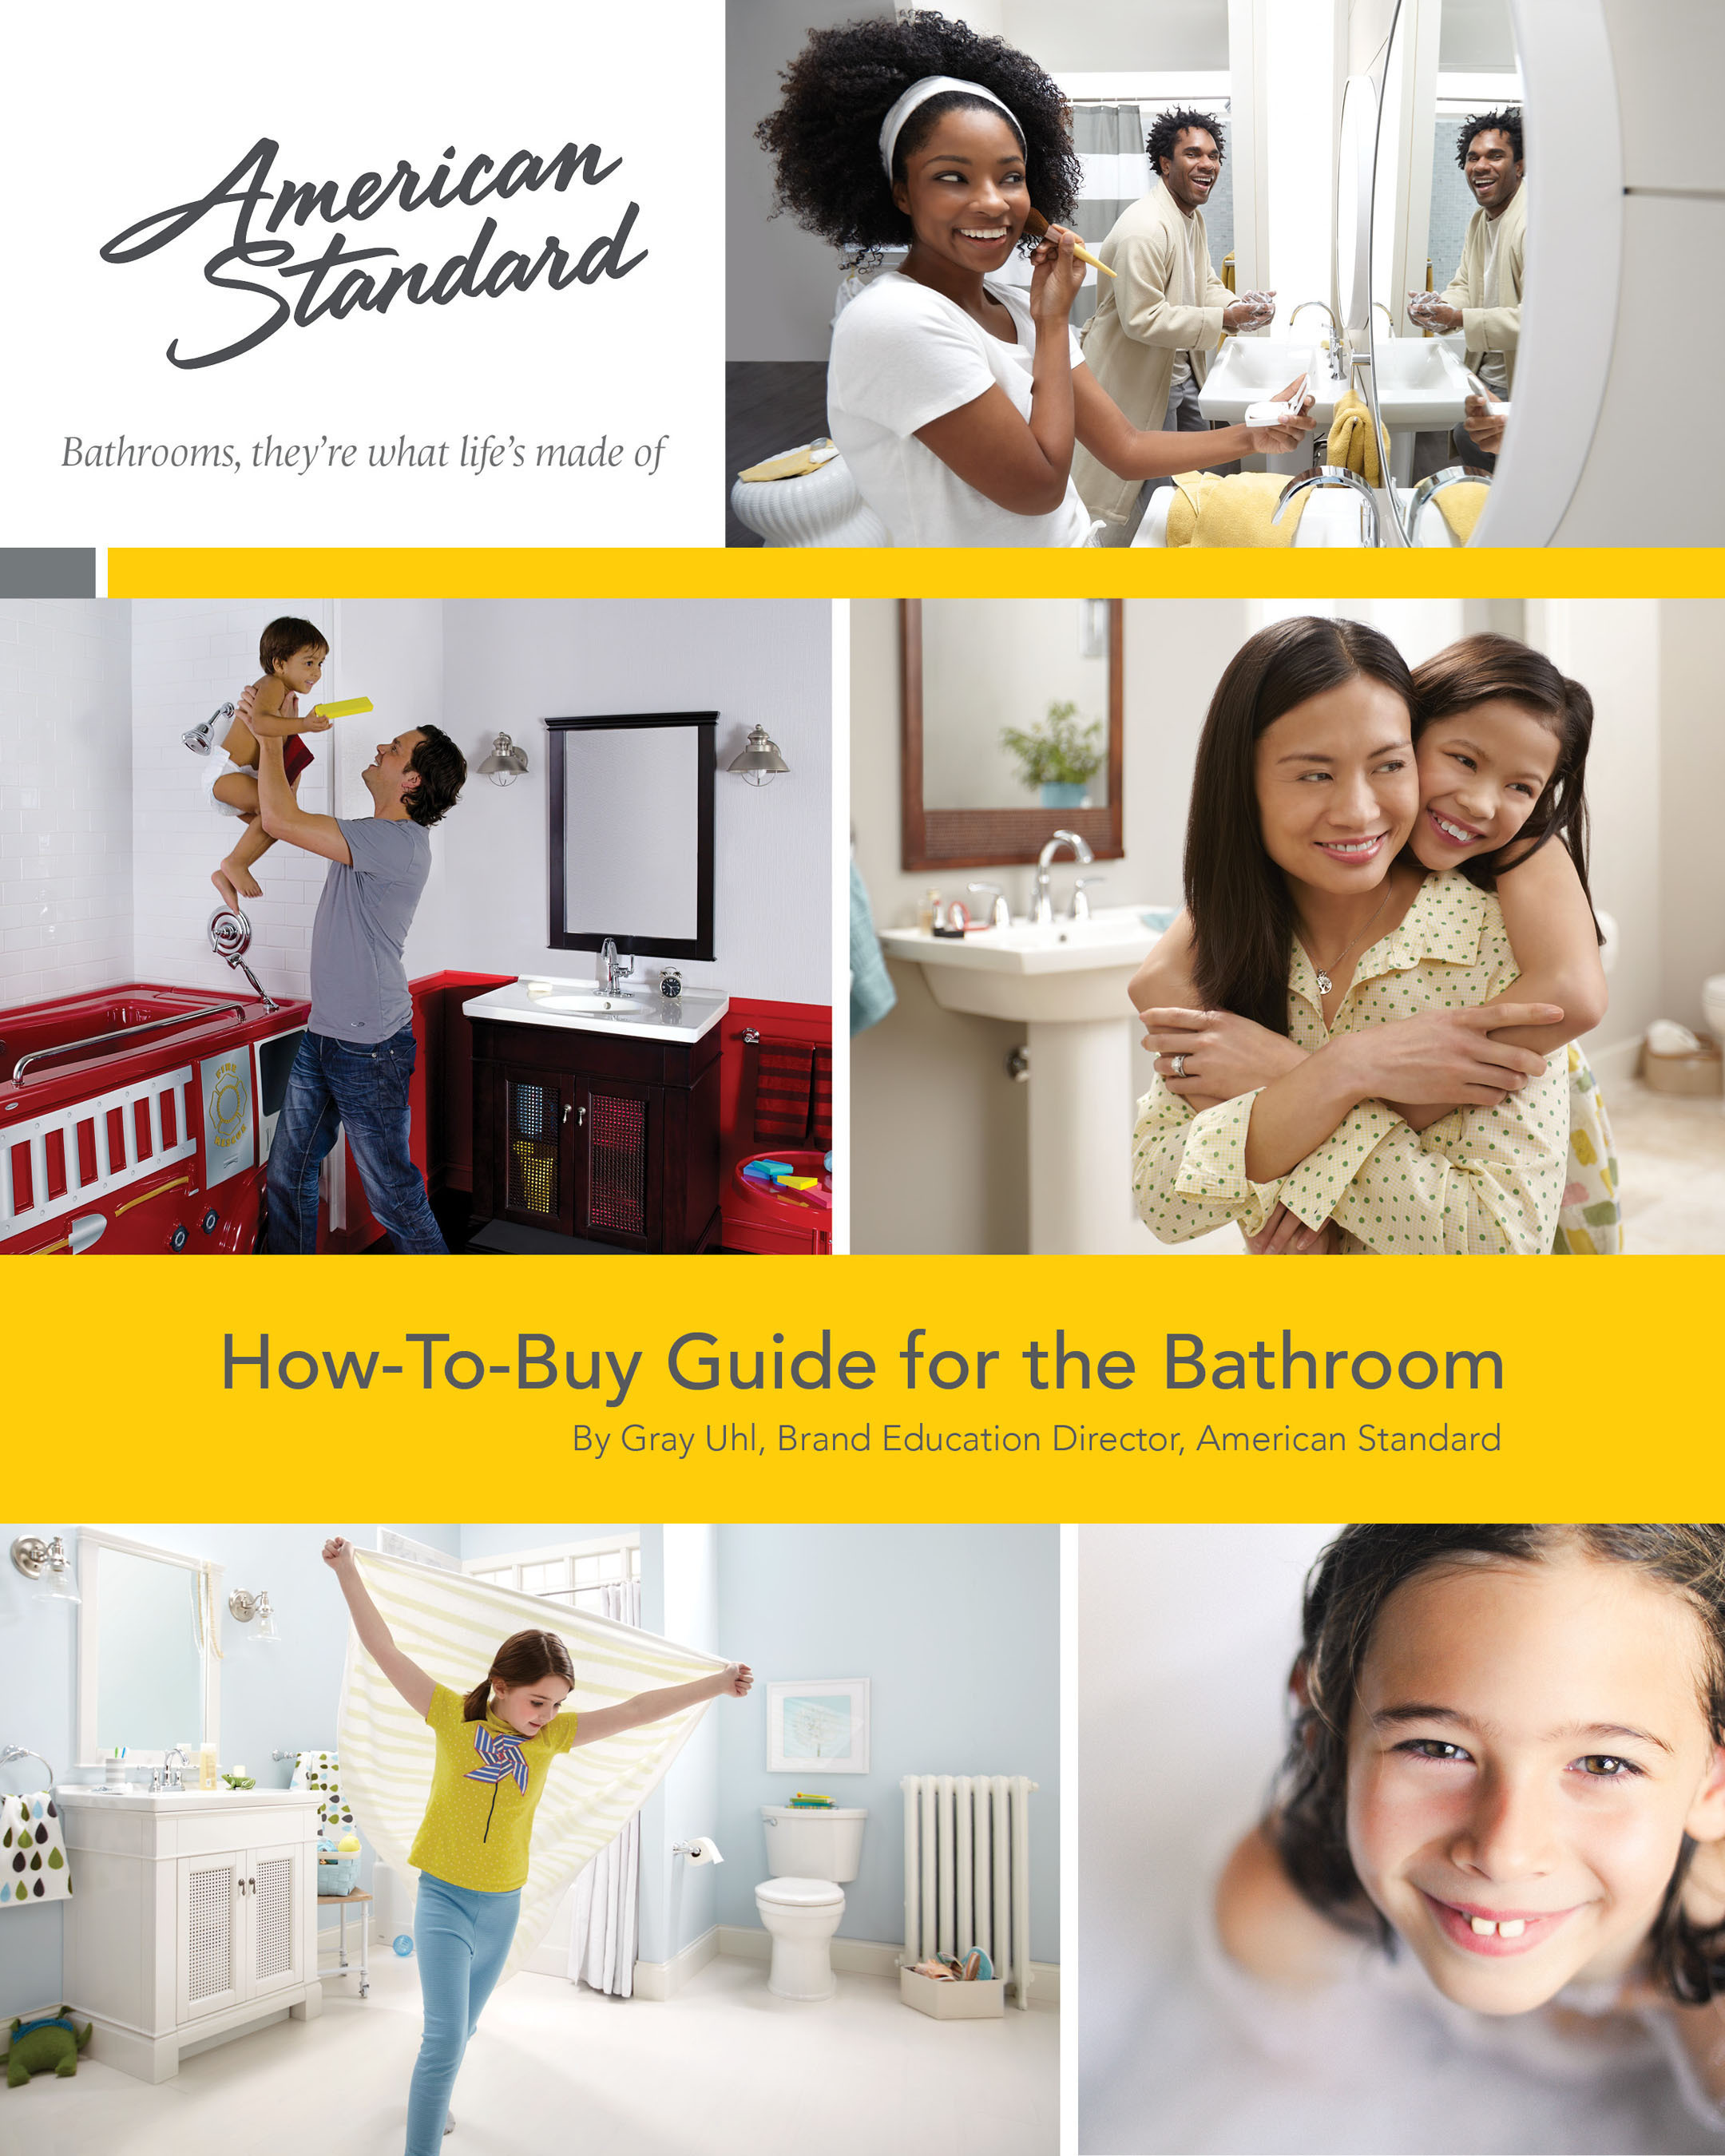 The How-to-Buy Guide for the Bathroom from American Standard helps to simplify the bathroom remodeling process, with helpful videos and product links. (PRNewsFoto/American Standard Brands) (PRNewsFoto/AMERICAN STANDARD BRANDS)